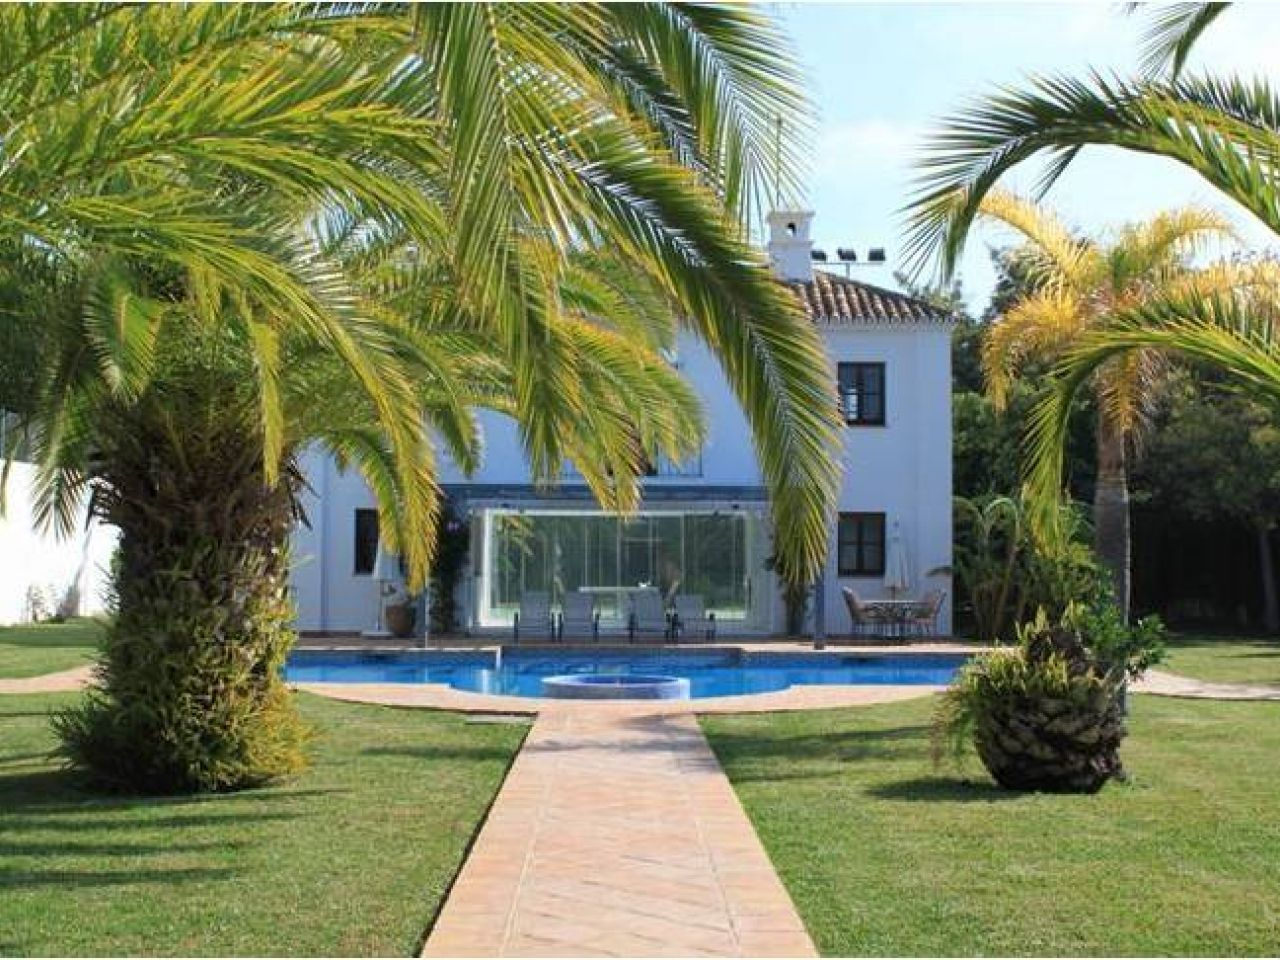 Maison unifamiliale pour l Vente à New villa located close to the sea Marbella, Costa Del Sol, 29679 Espagne